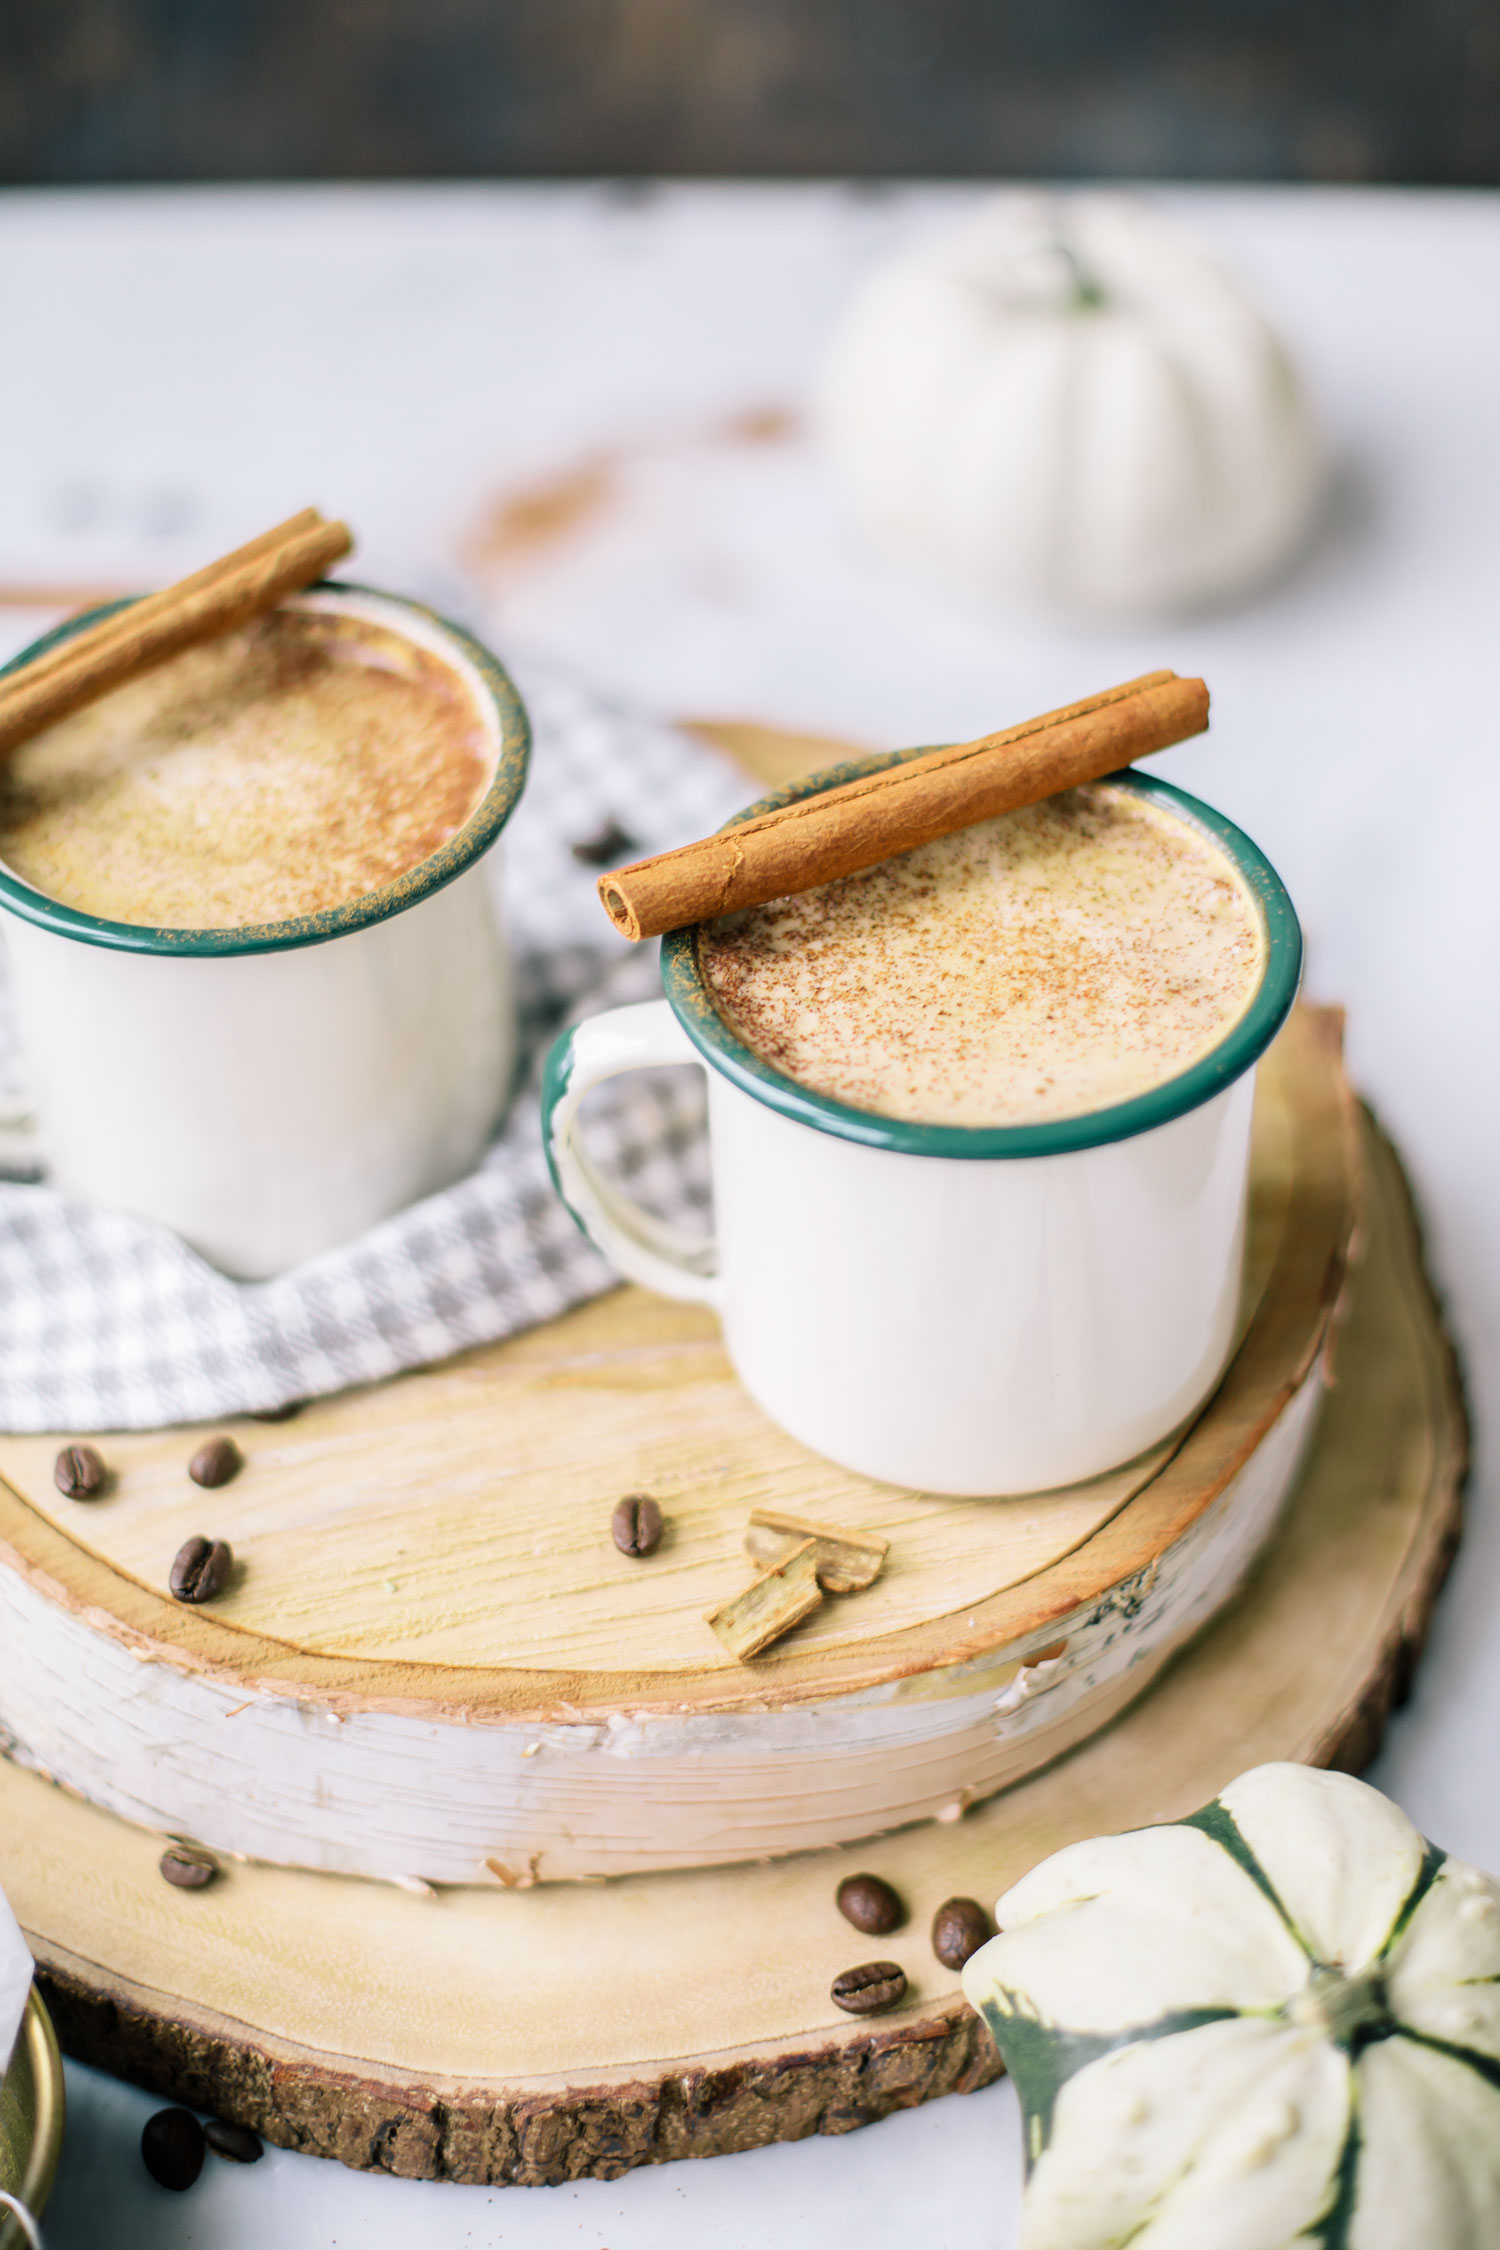 Double I Can Completely How To Make A Pumpkin Dirty Chai Latte Blondielocks Life Style Ever Since Sharing My Recipe My Most Shared Dirty Chai Lattes A Few Years It Hasbeen One nice food Dirty Chai Latte